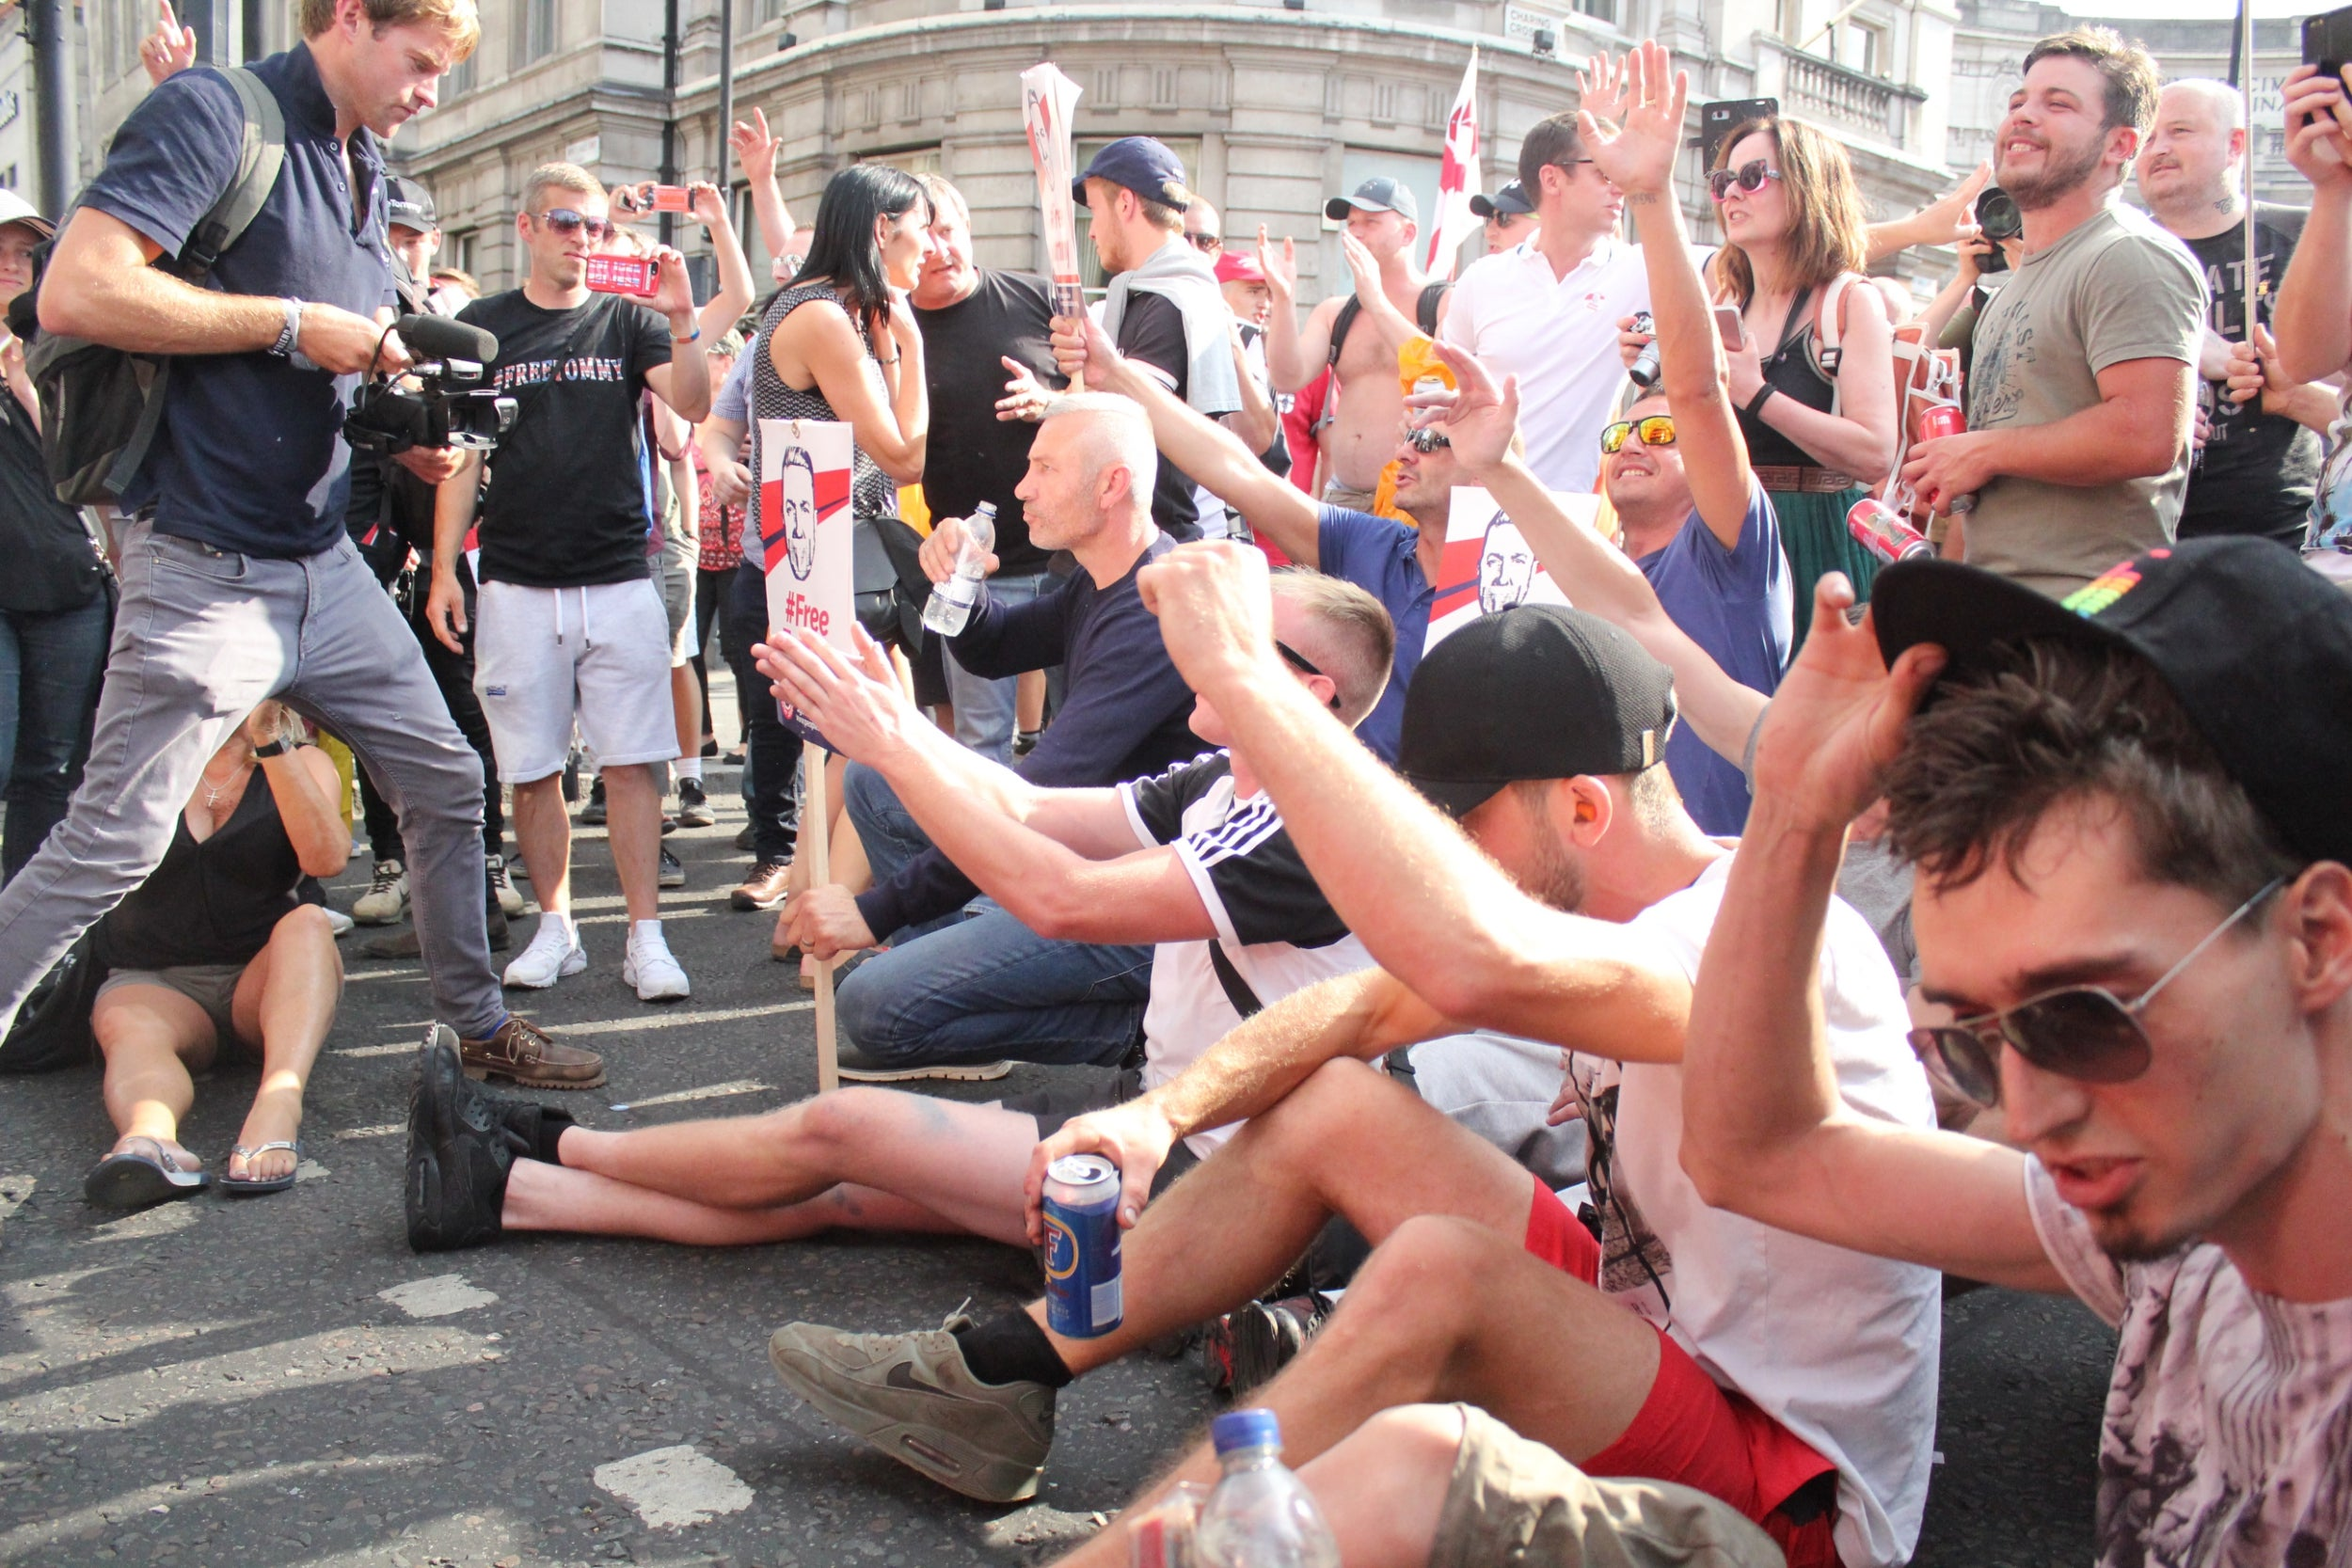 Angela Sun Topless tommy robinson march: protesters blockade bus driven